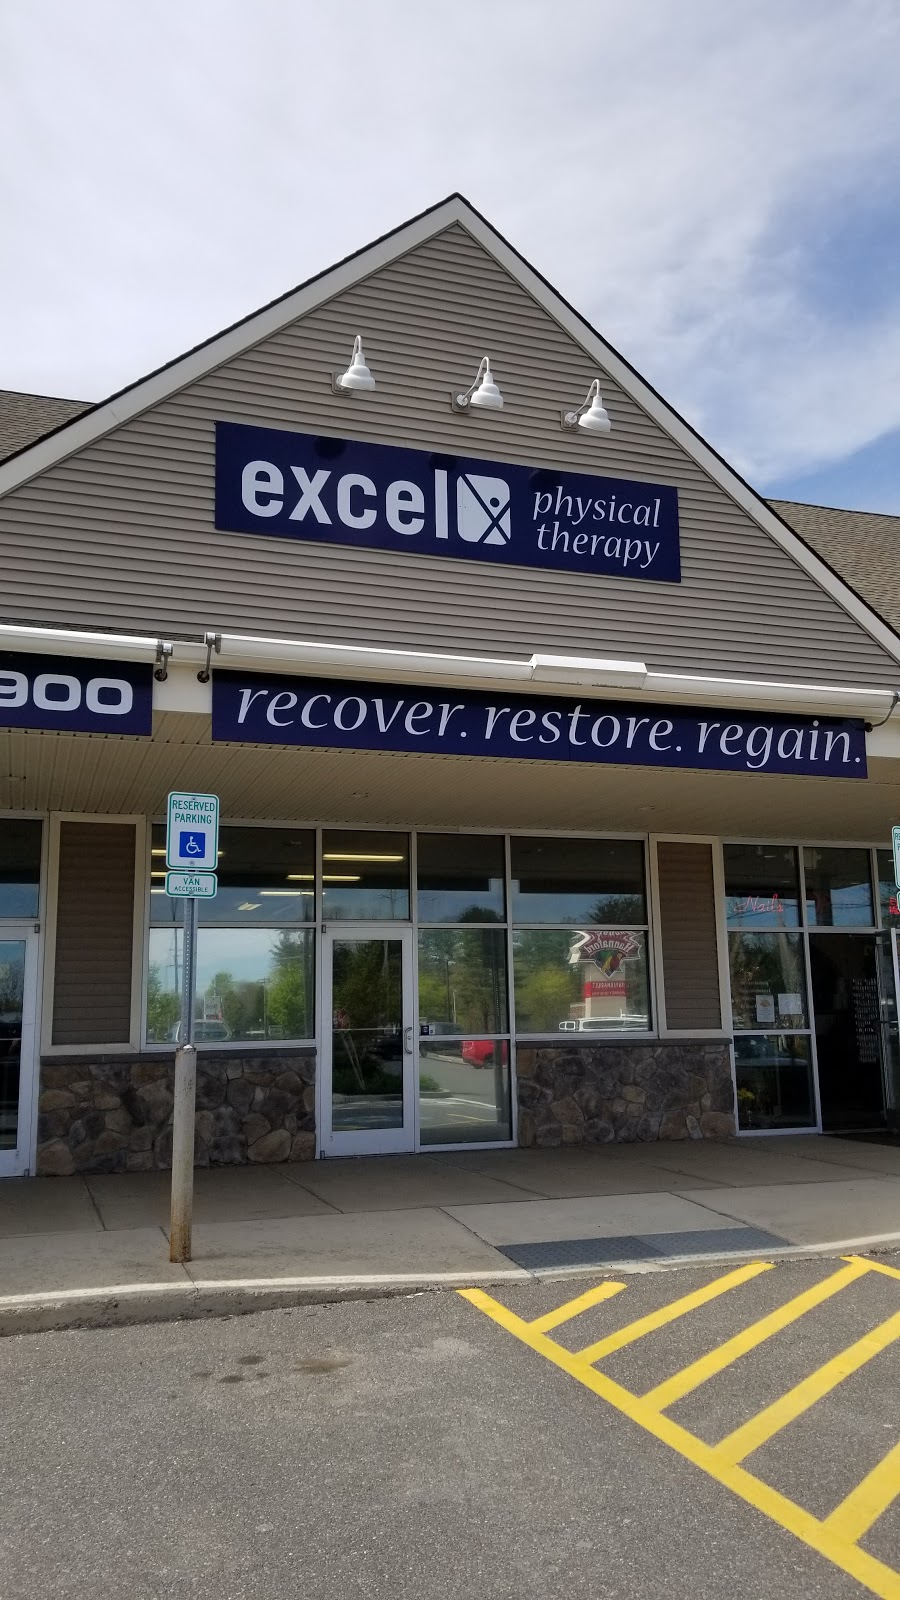 Excel Physical Therapy - physiotherapist  | Photo 2 of 2 | Address: 247 Main St Unit 2, Cairo, NY 12413, USA | Phone: (518) 622-2900